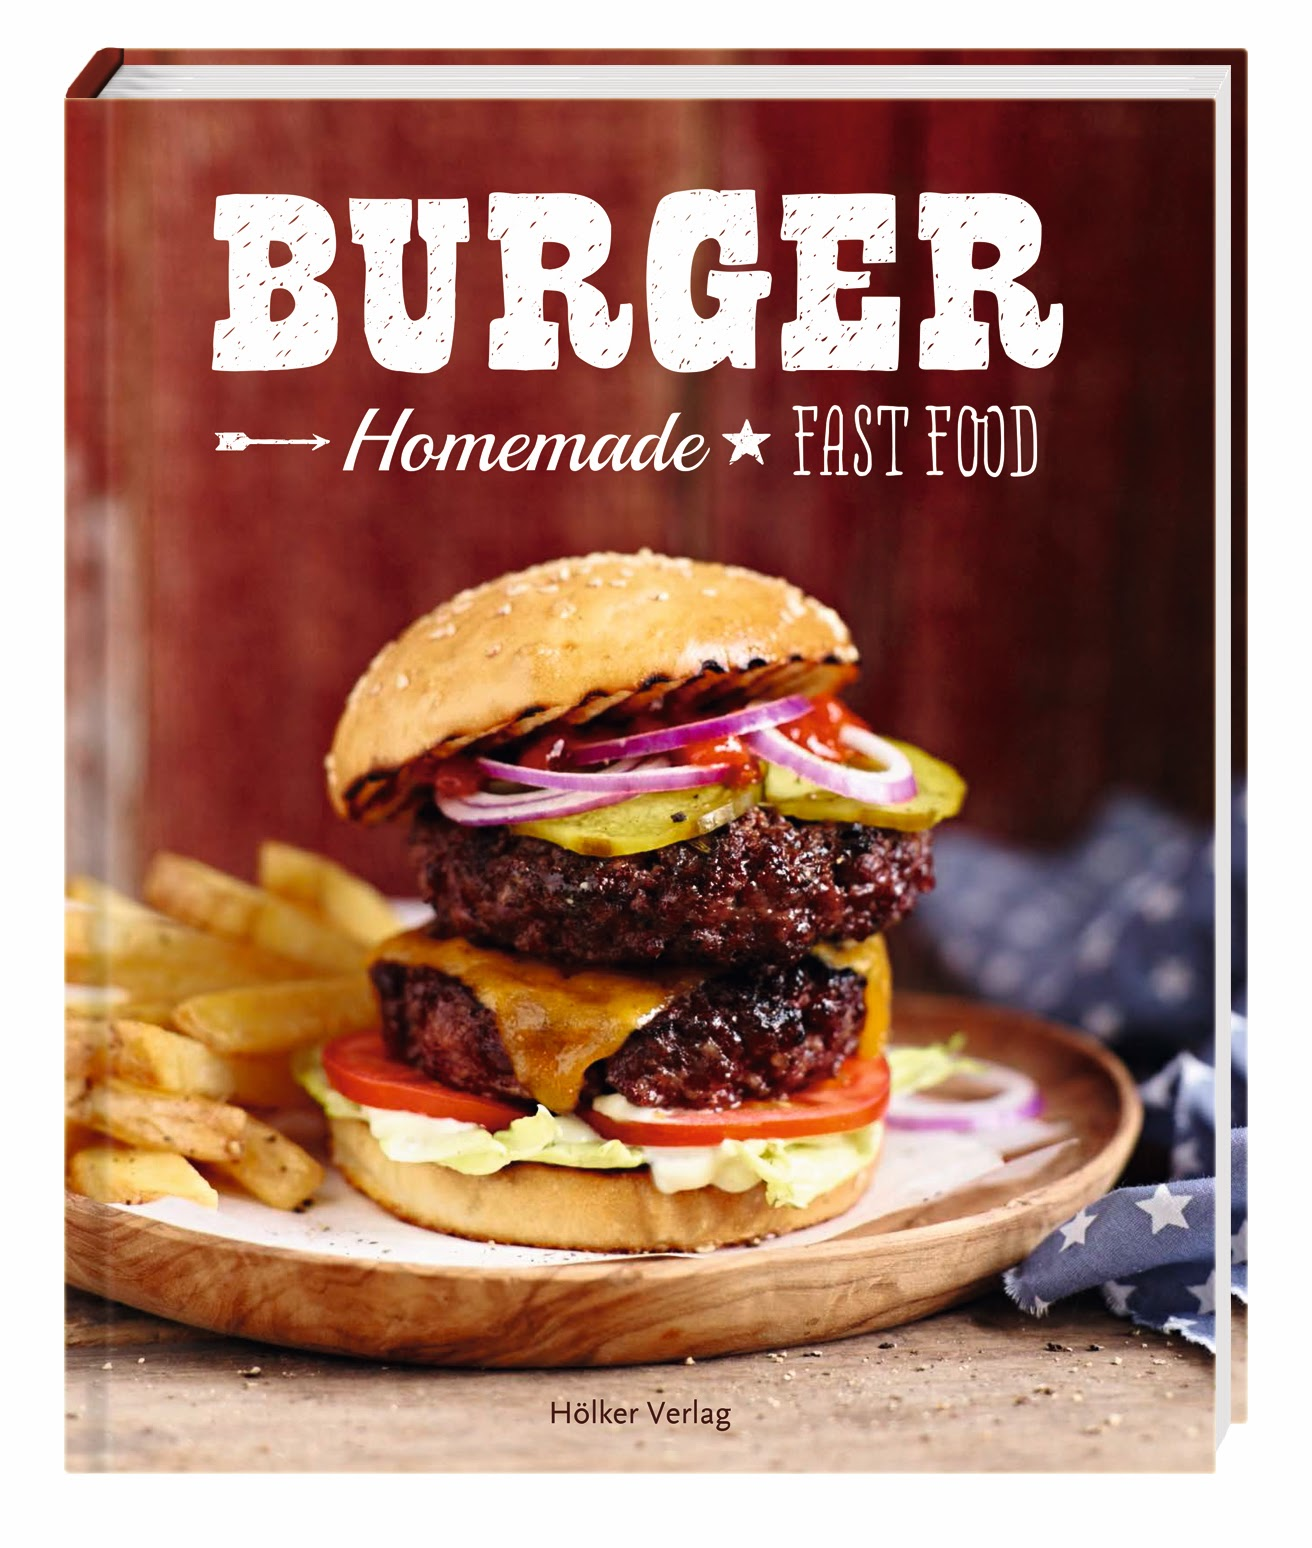 https://shop.coppenrath.de/produkt/333919/burger-homemade-fast-food/geschenke-buecher-fuer-erwachsene/buchwelt-erwachsene/kochbuecher-backbuecher/#page=2